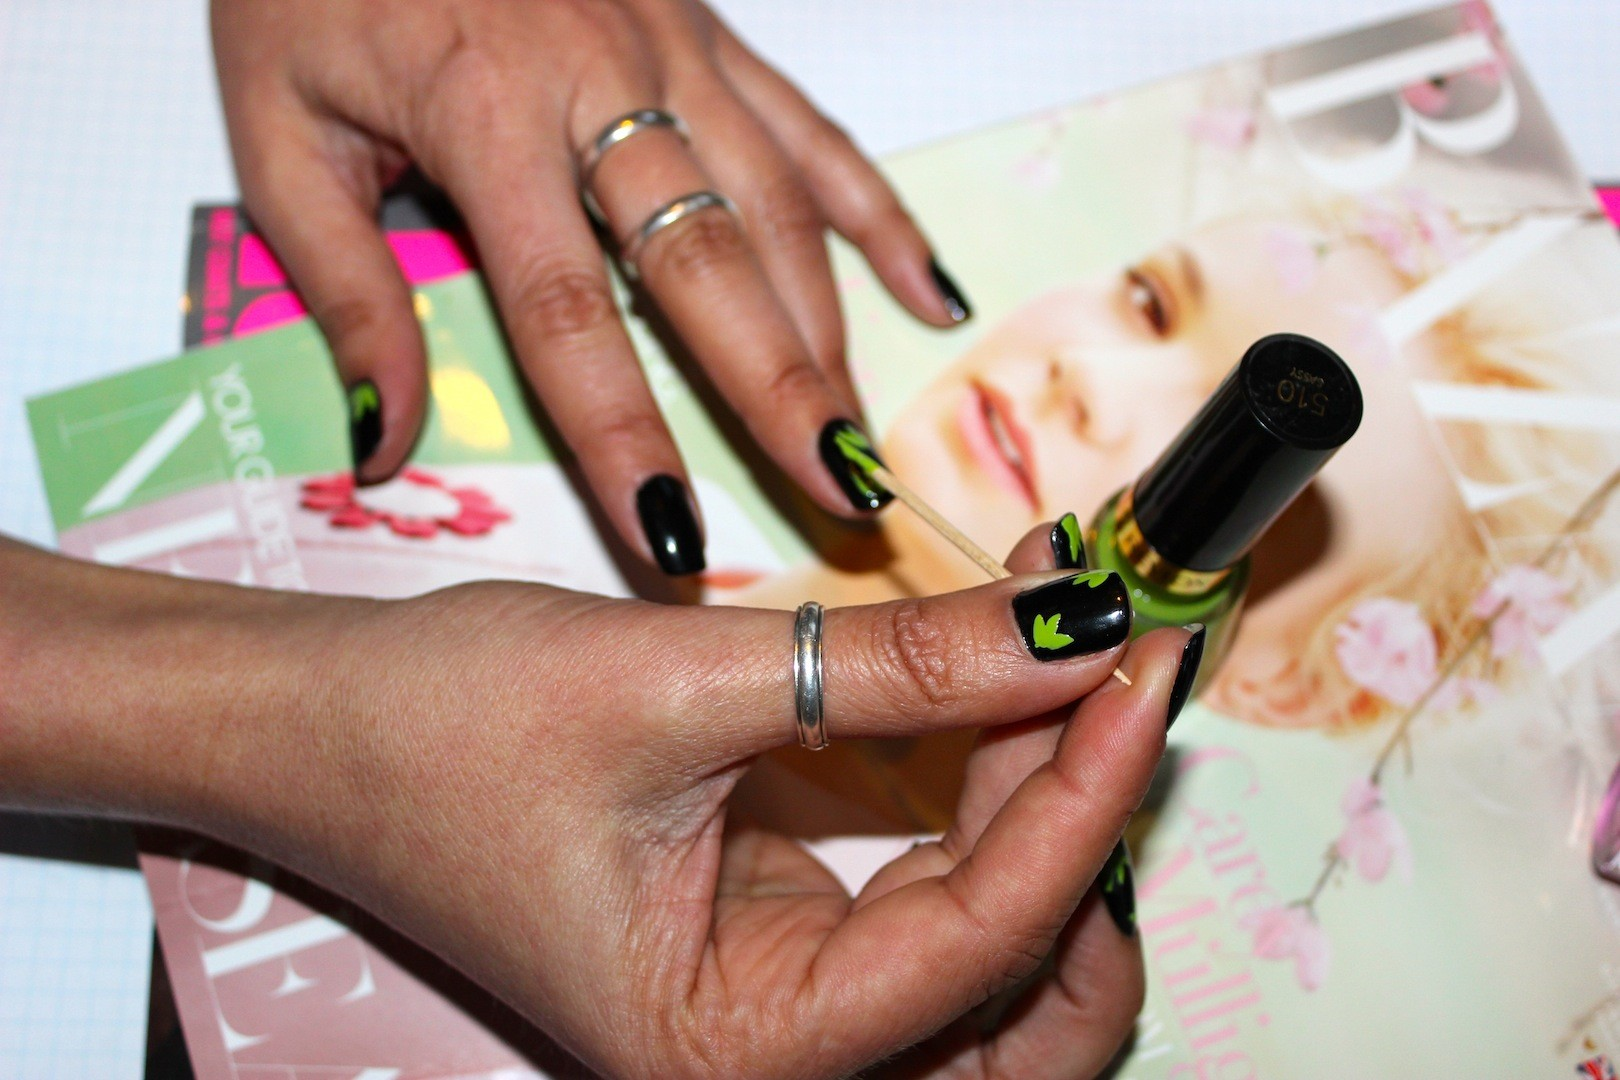 DIY Nails, Nail art, floral nails, manicure, beauty, Fashion media nz, beauty media nz, beauty blog nz, style blog nz, fashion blog nz,  Gurlinterrupted, Angie Fredatovich, orly, butter LONDON, Orly, Maybelline NZ,